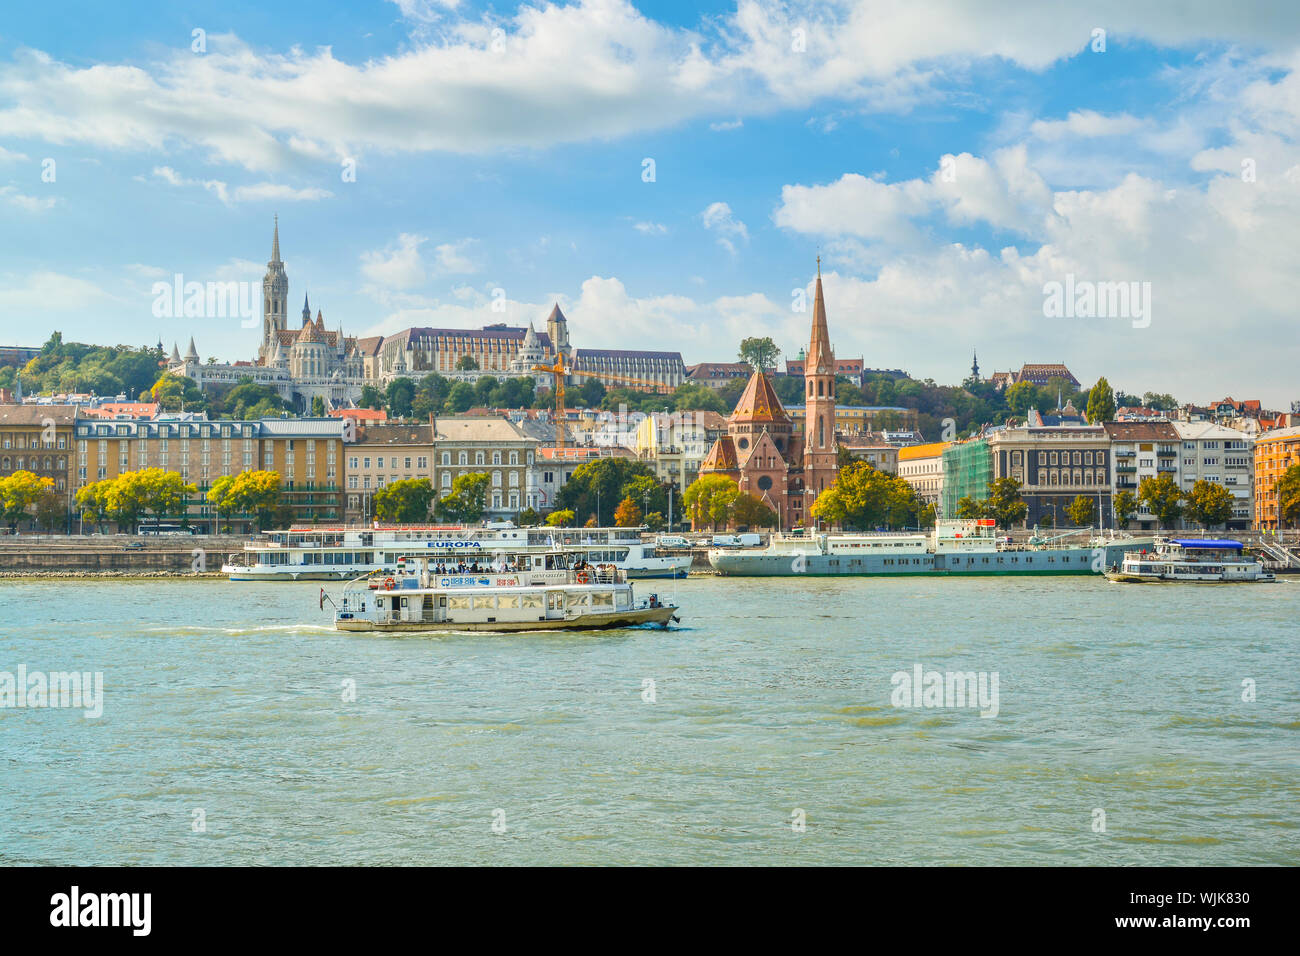 The Szilágyi Dezso Square Reformed Church on the banks of the Danube River in Budapest Hungary with the Castle District, St Matthias Church above Stock Photo